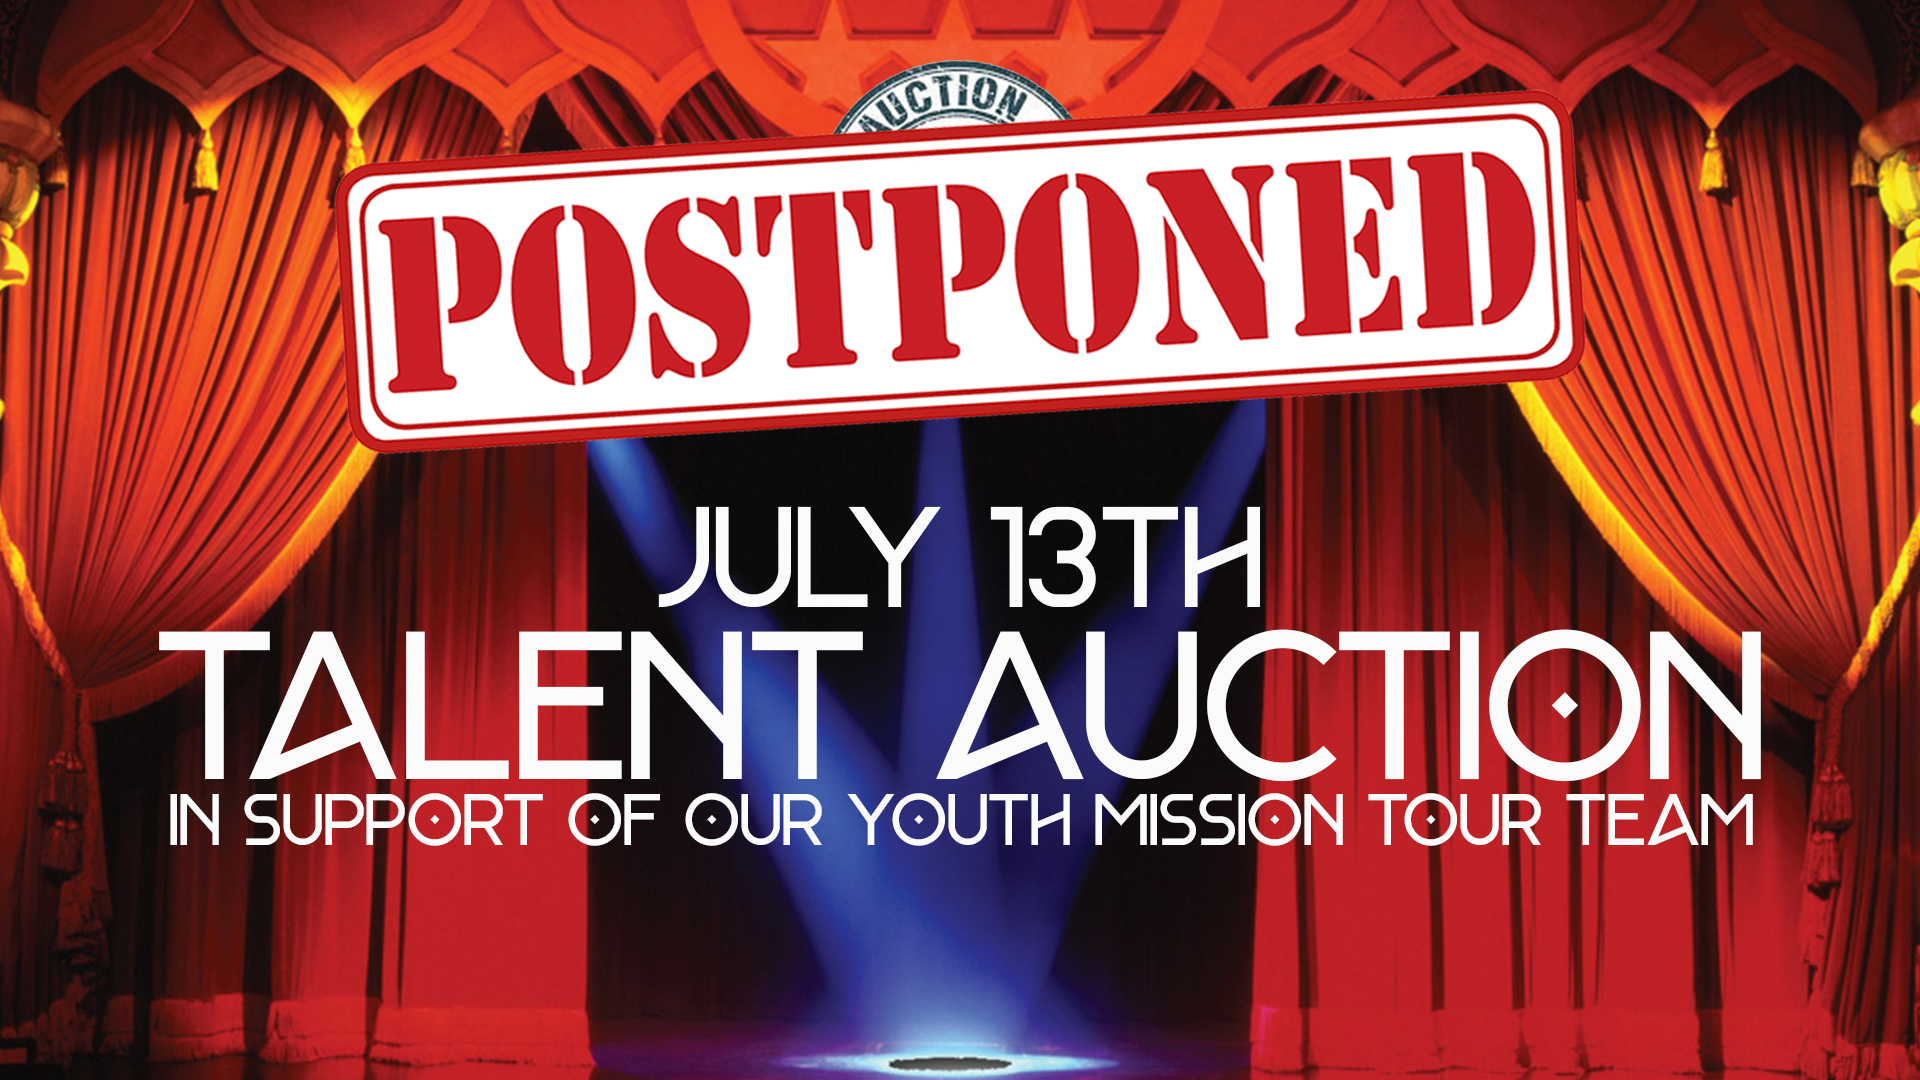 Youth Talent Auction Postponed July 13th 2019 WEB.jpg